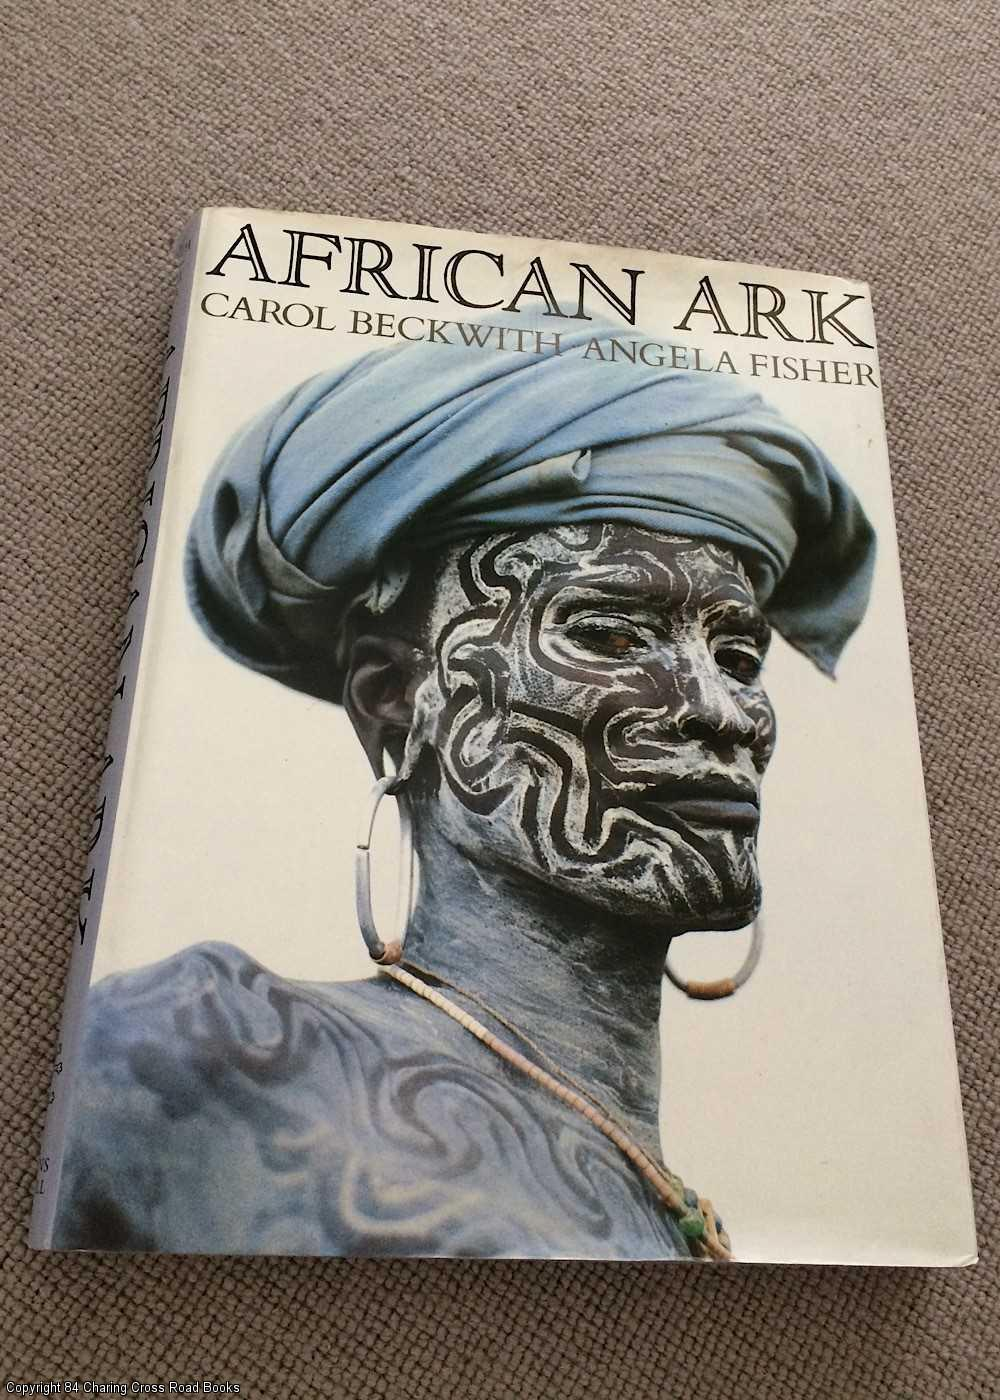 BECKWITH CAROL, FISHER ANGELA - African Ark: Peoples of the Horn